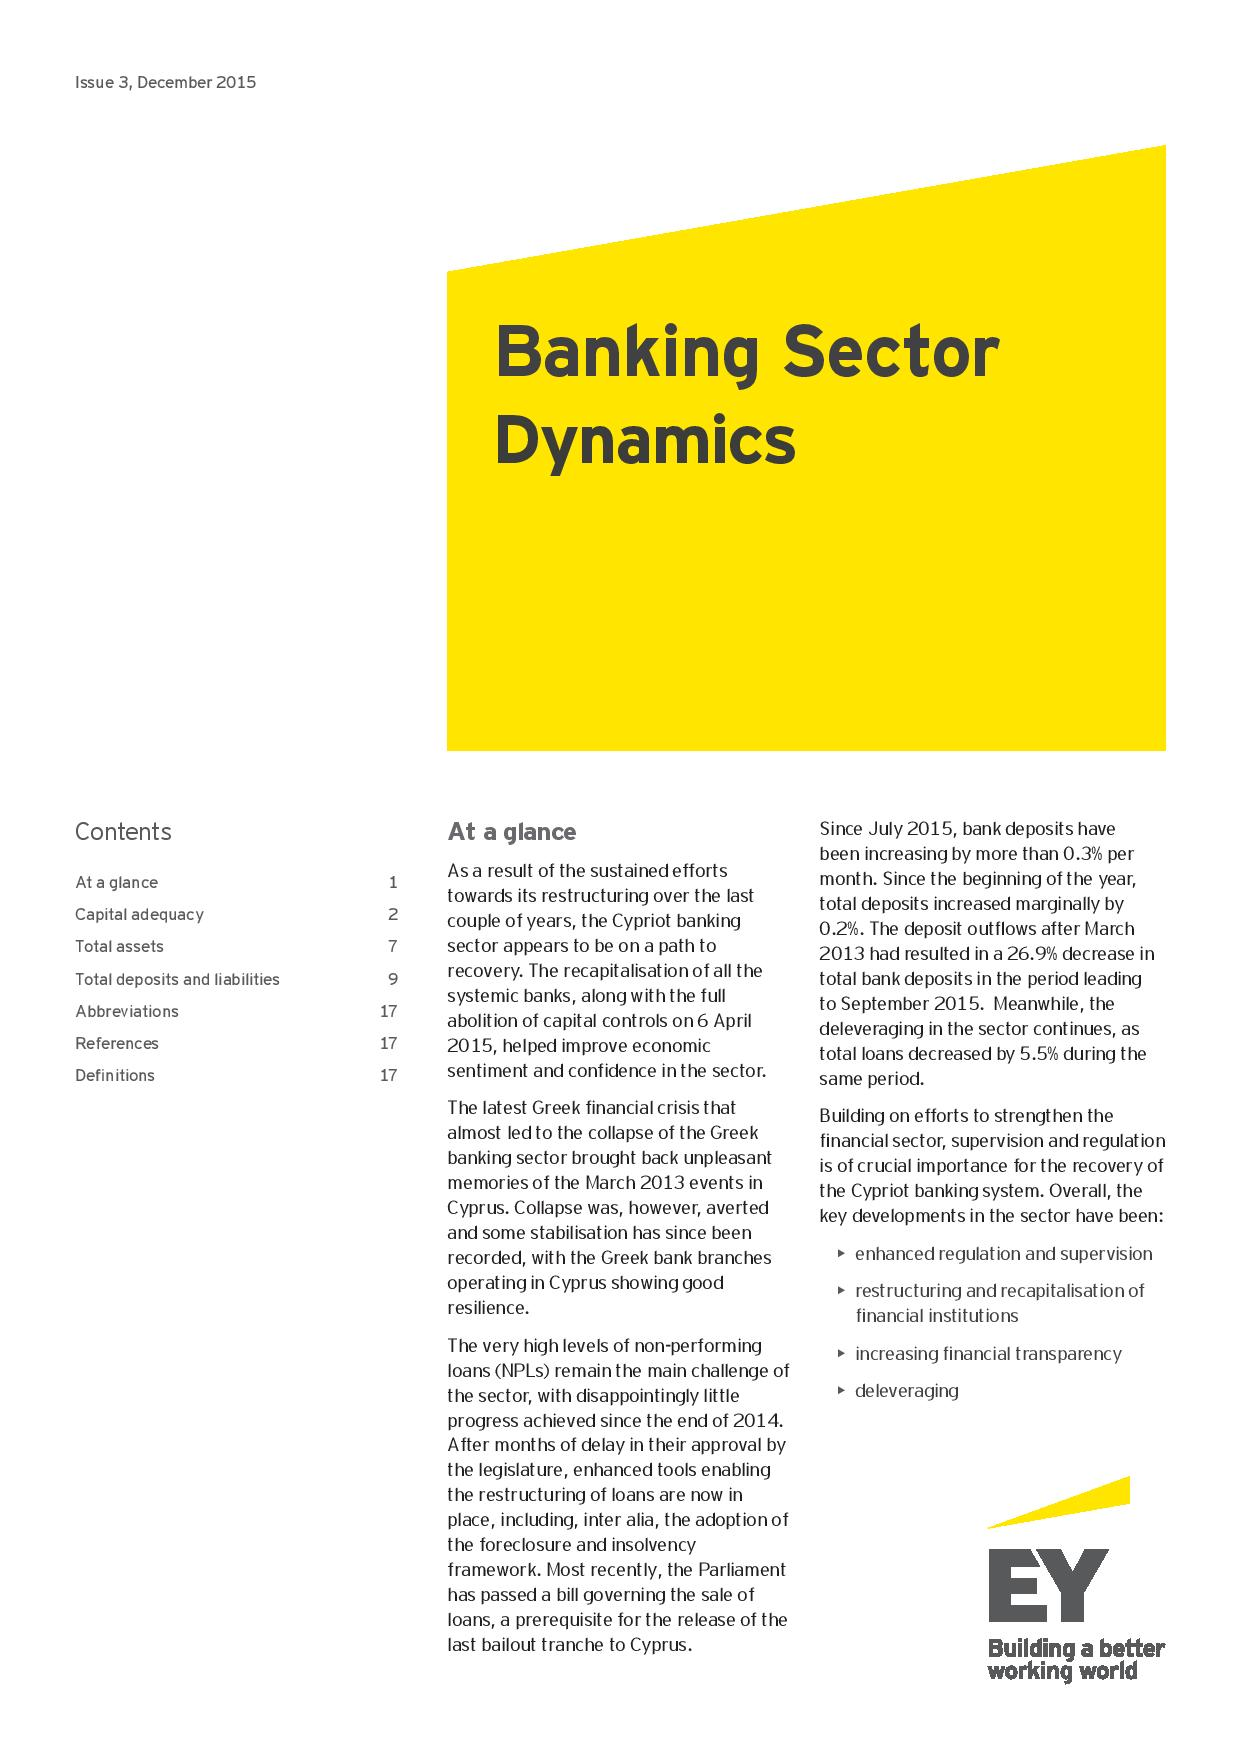 EY: Banking Sector Dynamics Issue #3 December 2015